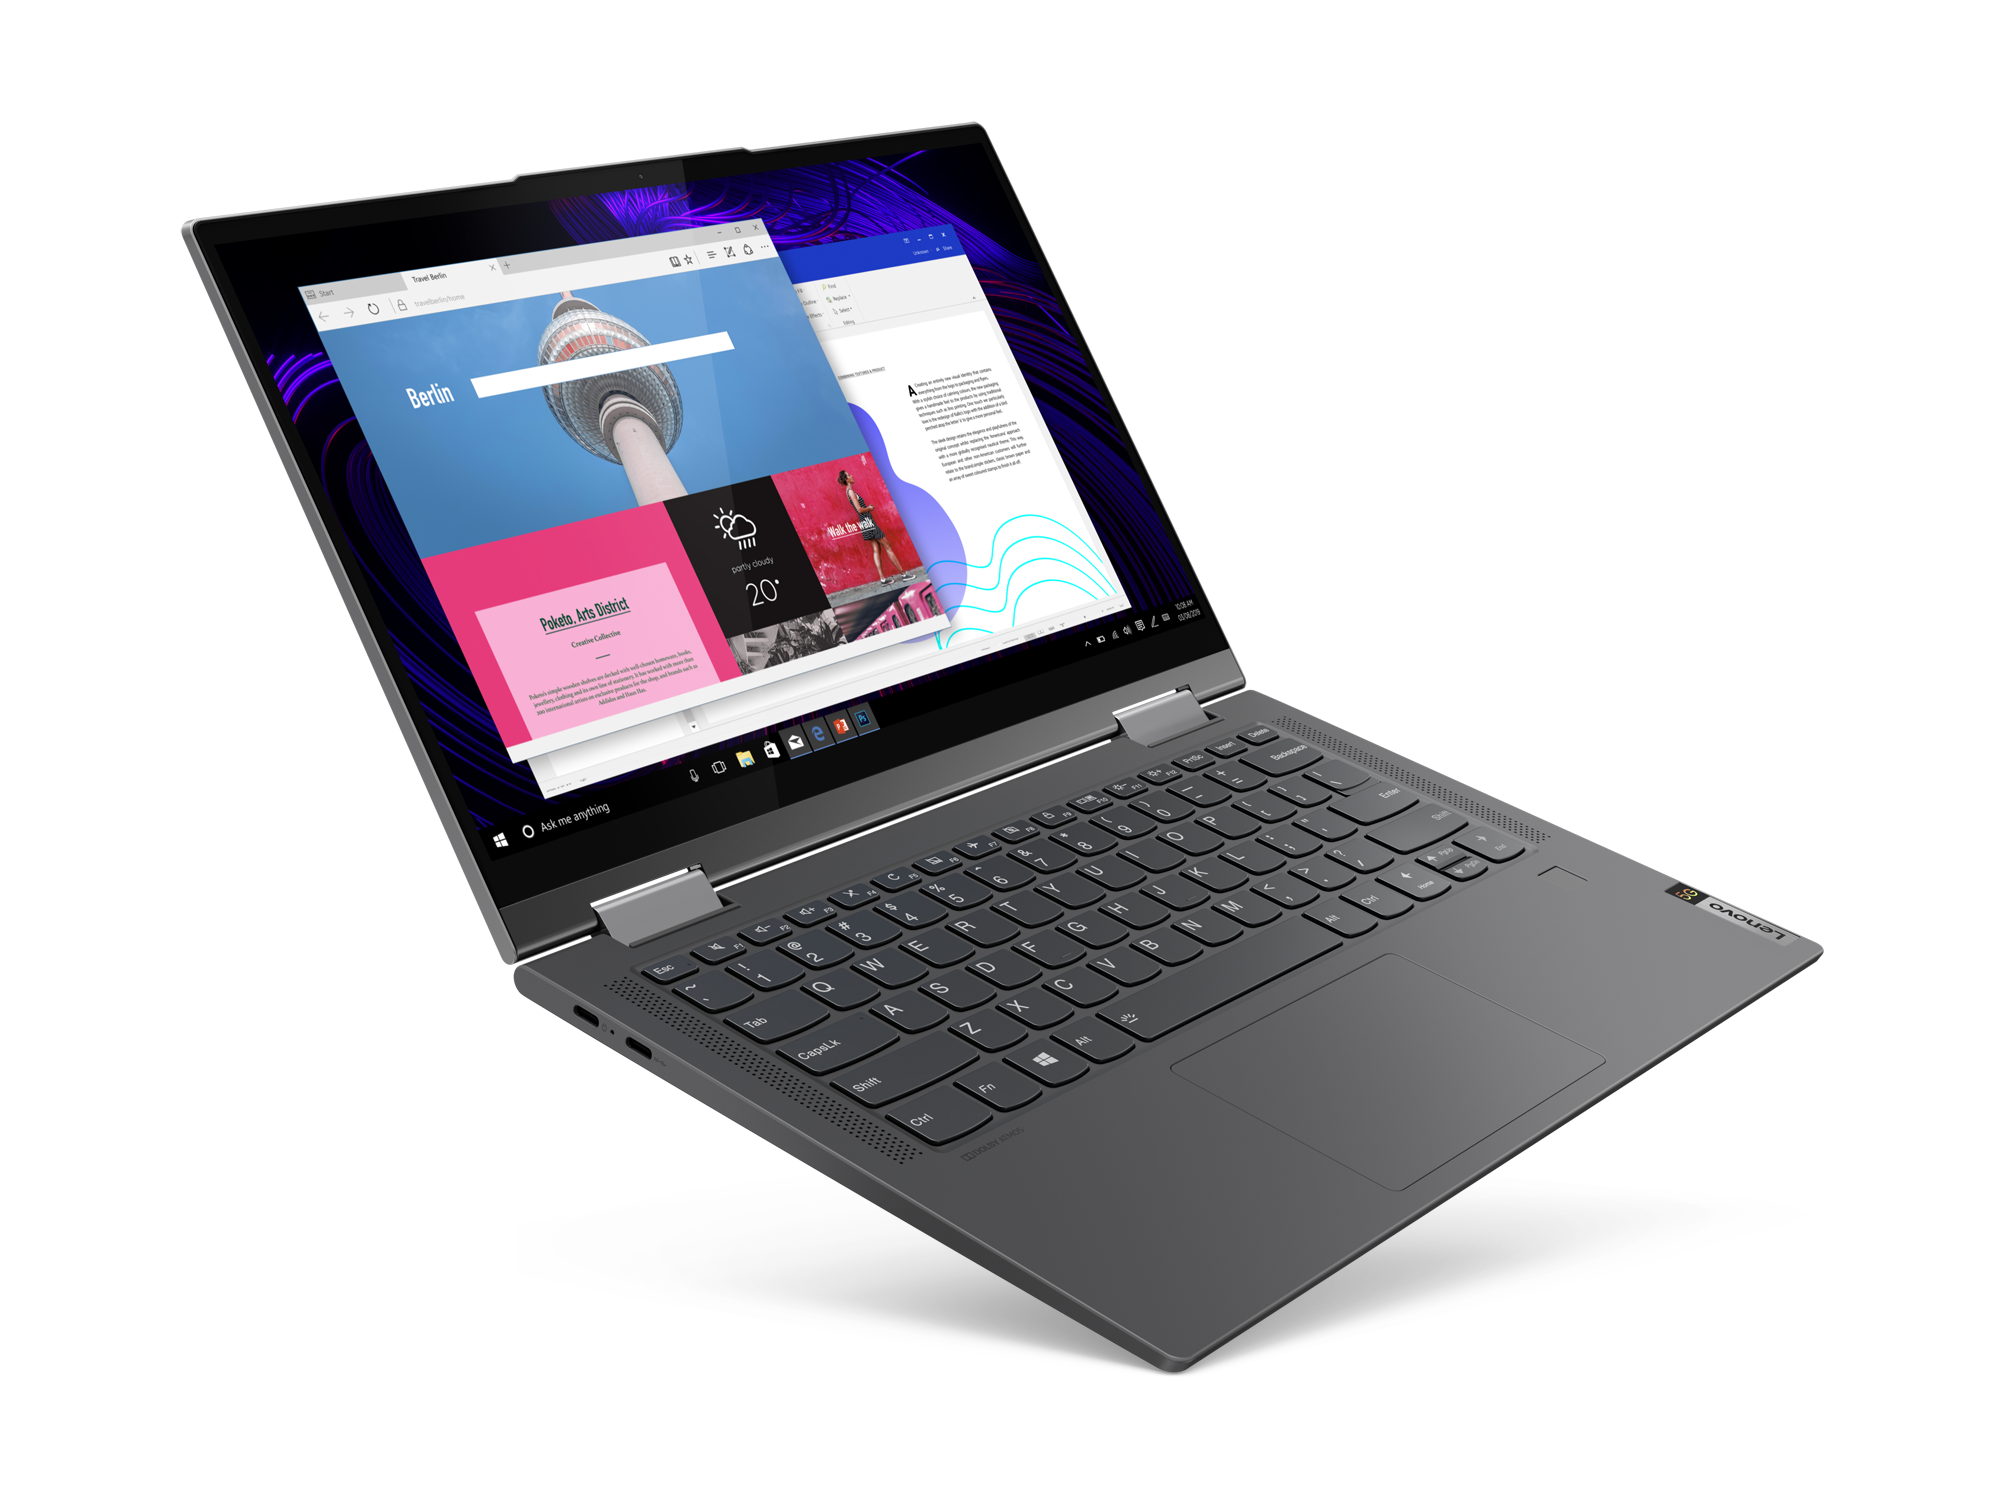 Lenovo Yoga 5G convertible notebook press image courtesy of Lenovo